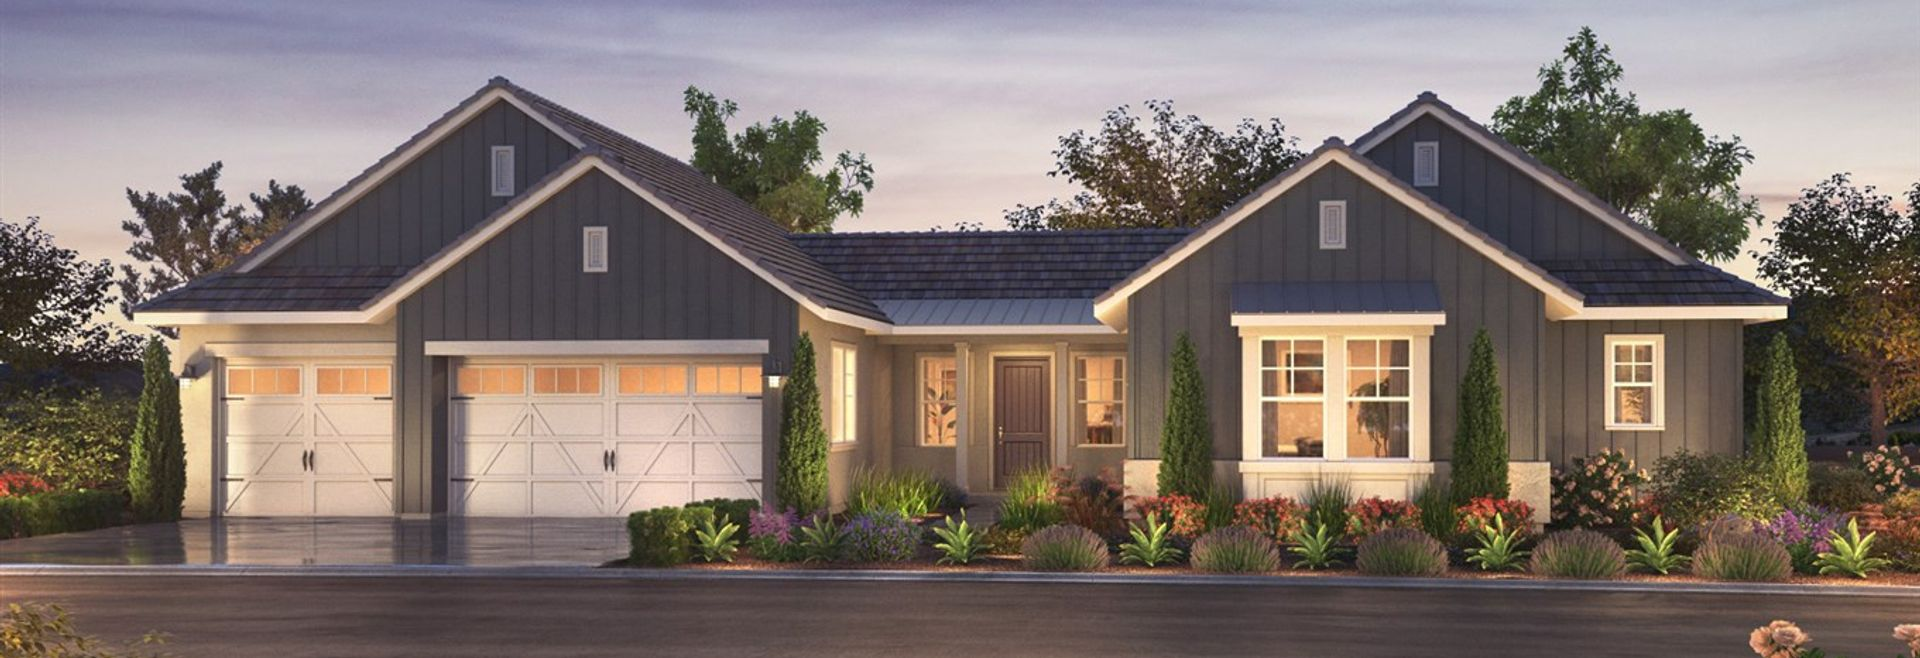 Wedgewood by Shea Homes in Yorba Linda, CA